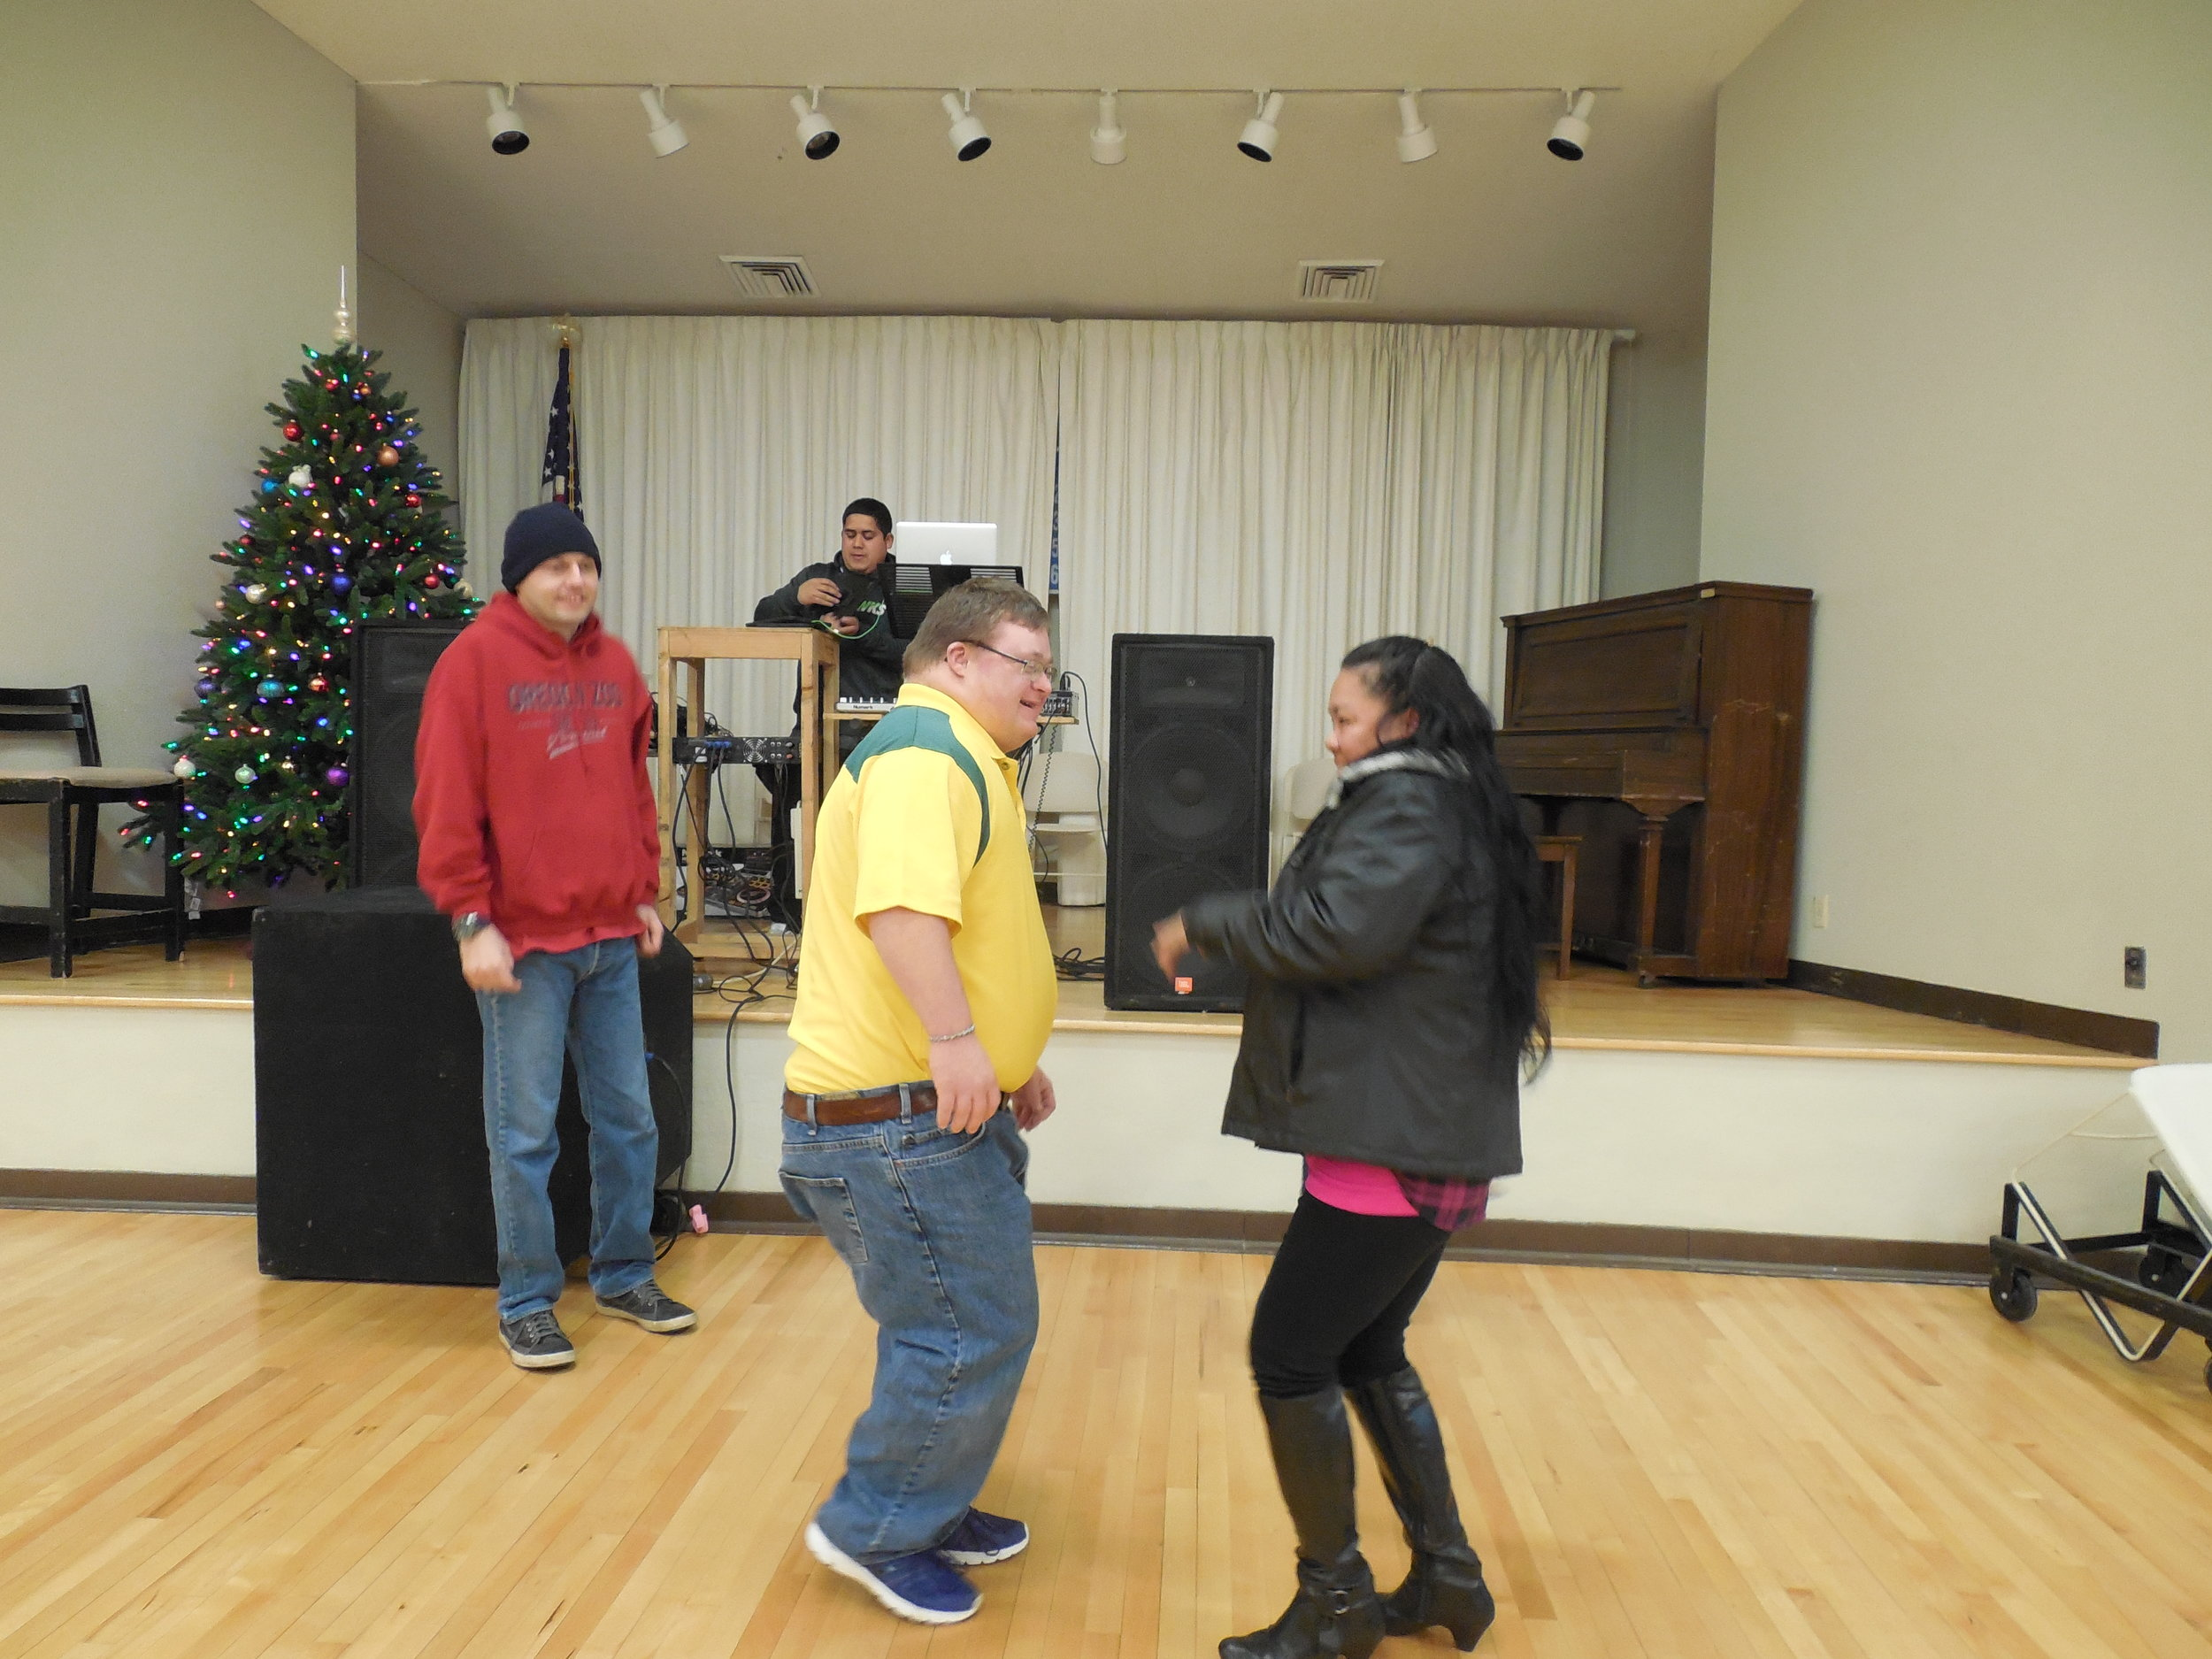 Christmas Party-Danny and Clinton dancing.JPG